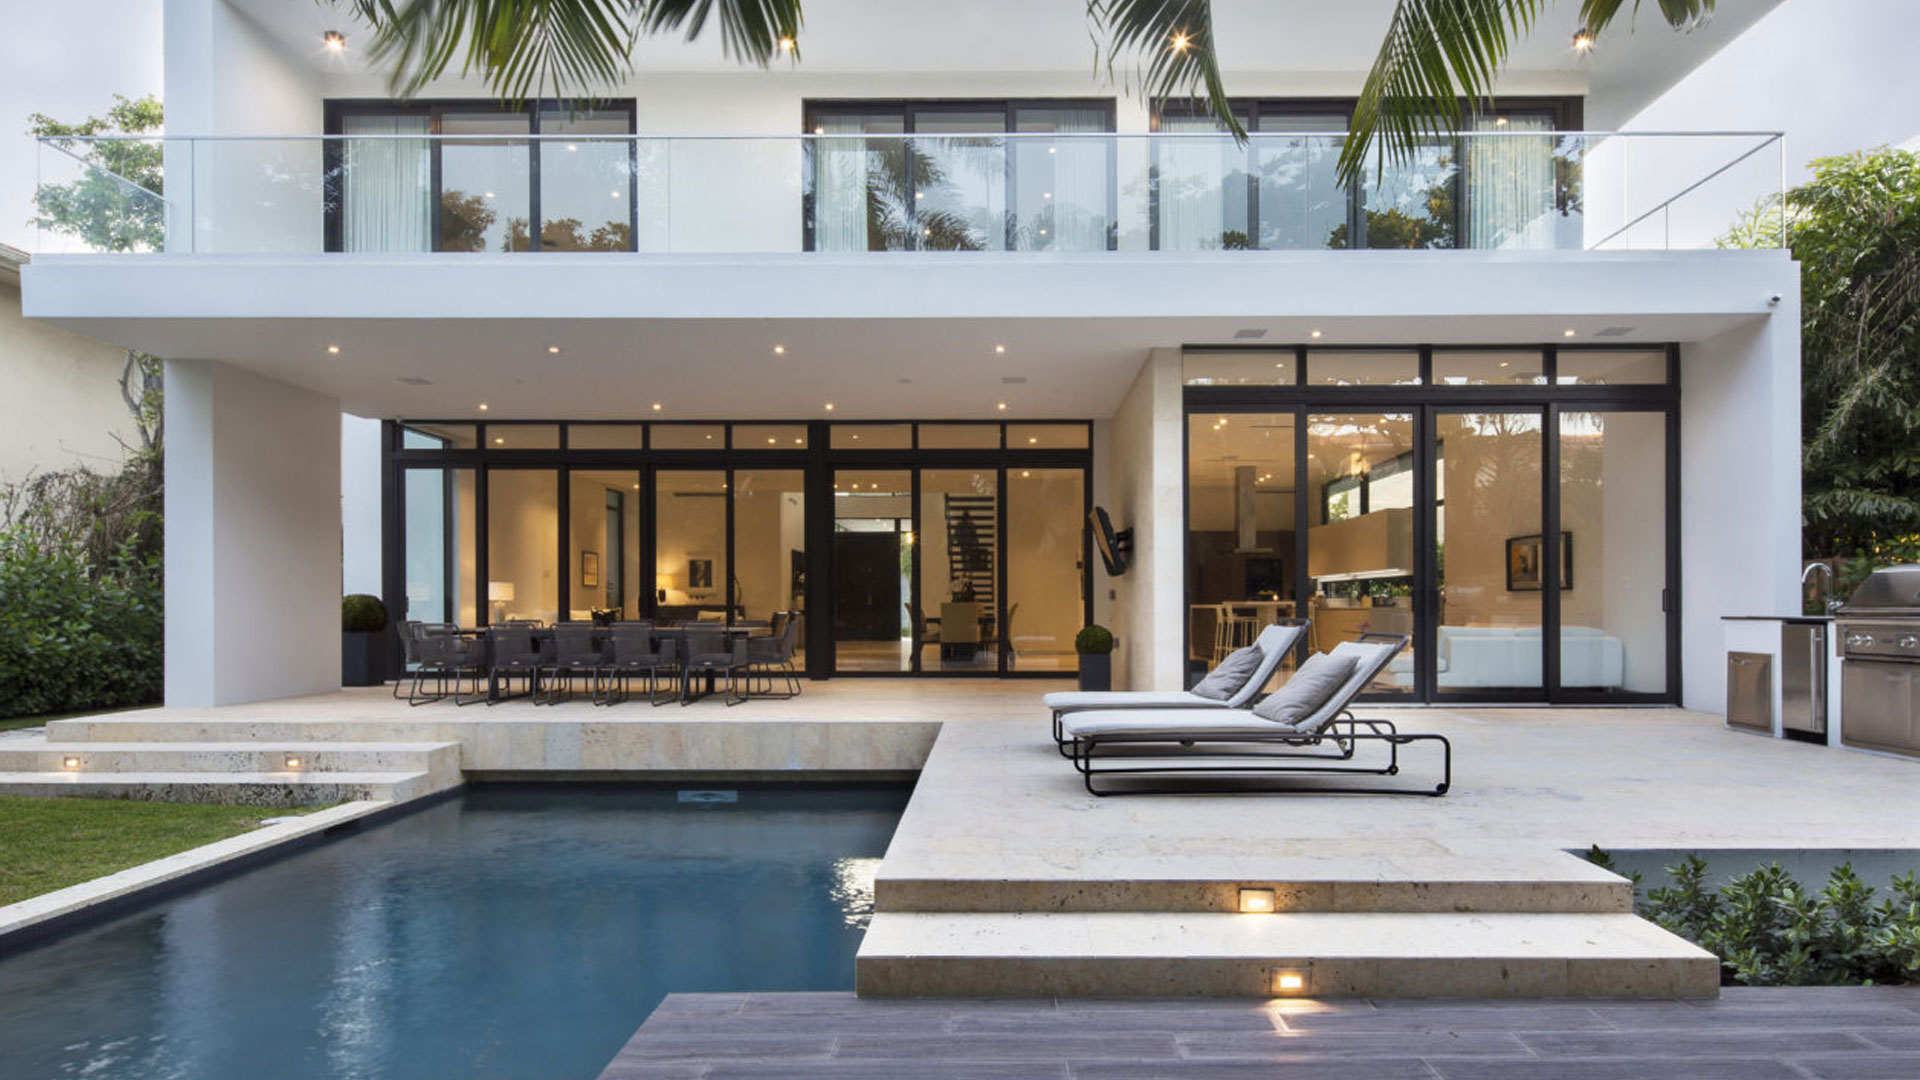 Golden Beach Residence High-end Builder Contractor Miami Modern Luxury Facade pool miami deck stone steps light